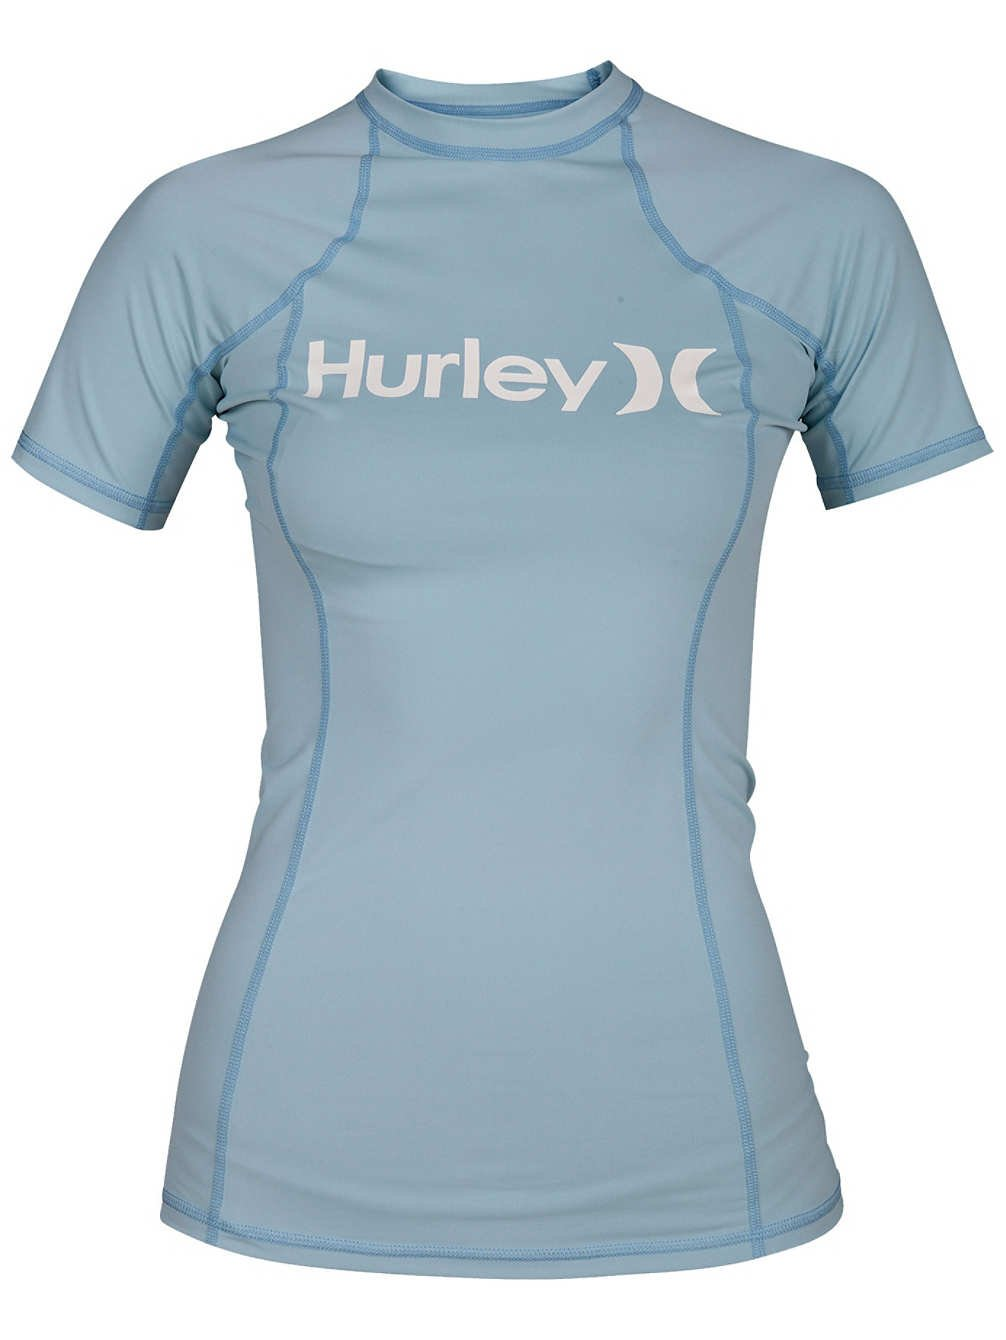 Hurley Women's One and Only SS Rash Guard - Ocean Bliss - M